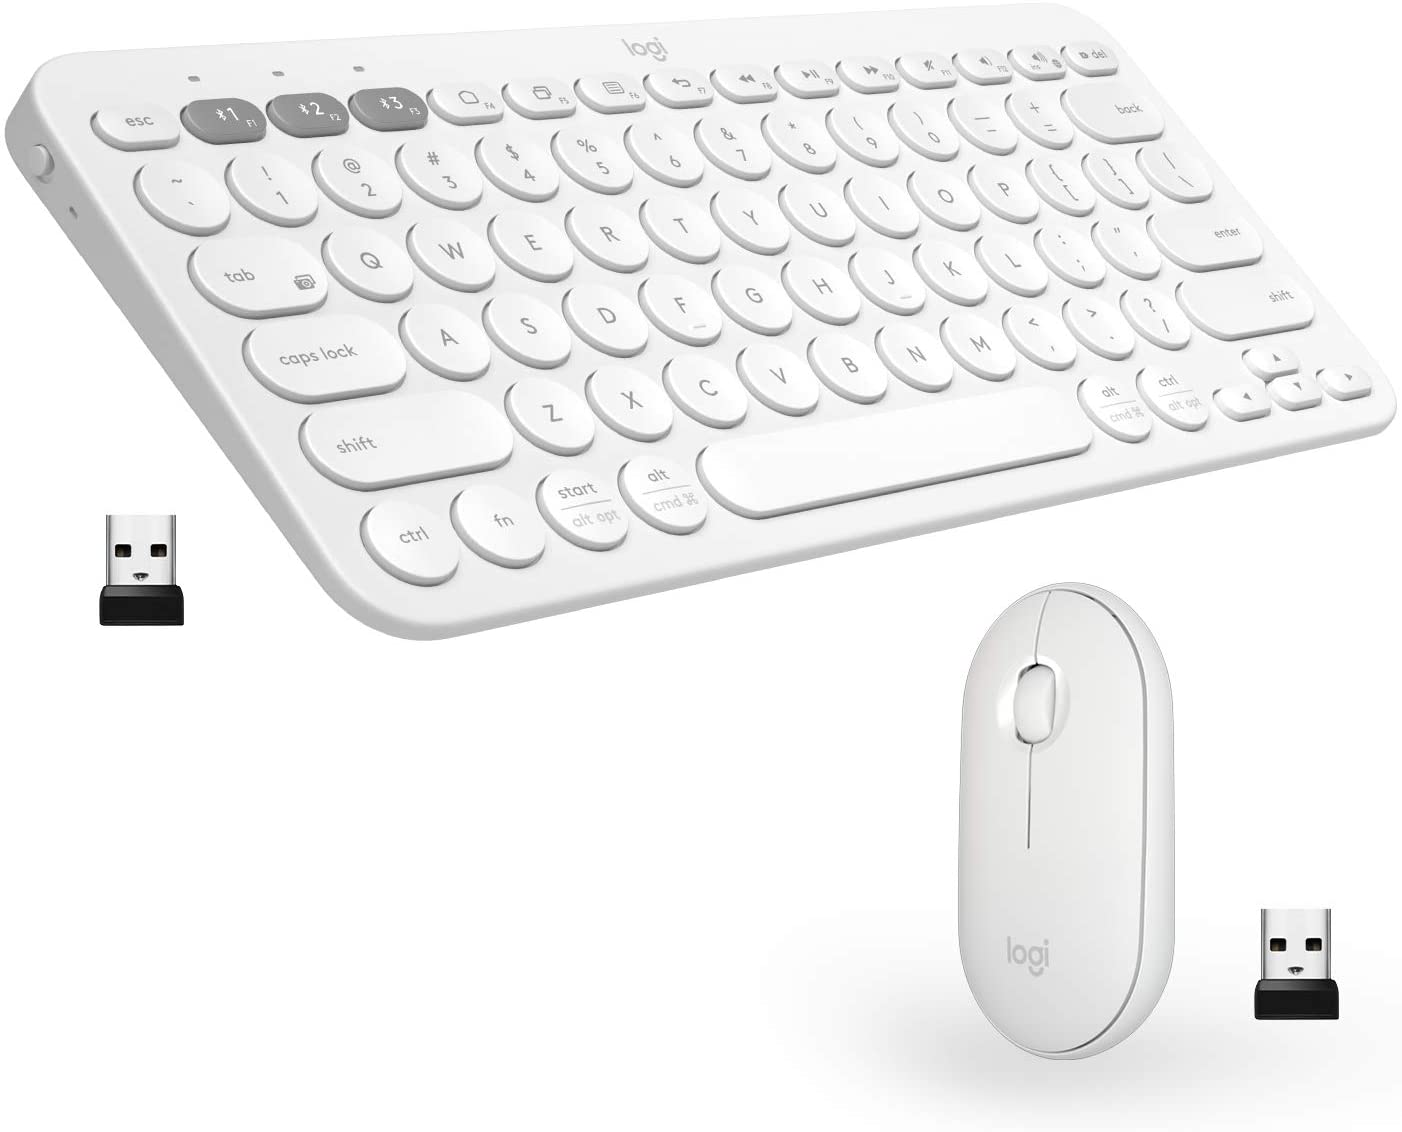 Logitech K380 + M350 Wireless Keyboard and Mouse Combo - Slim Portable Design, Quiet clicks, Long Battery Life, Bluetooth connectivity, Multi Device with Easy-Switch for Mac, Chrome OS, Windows-White